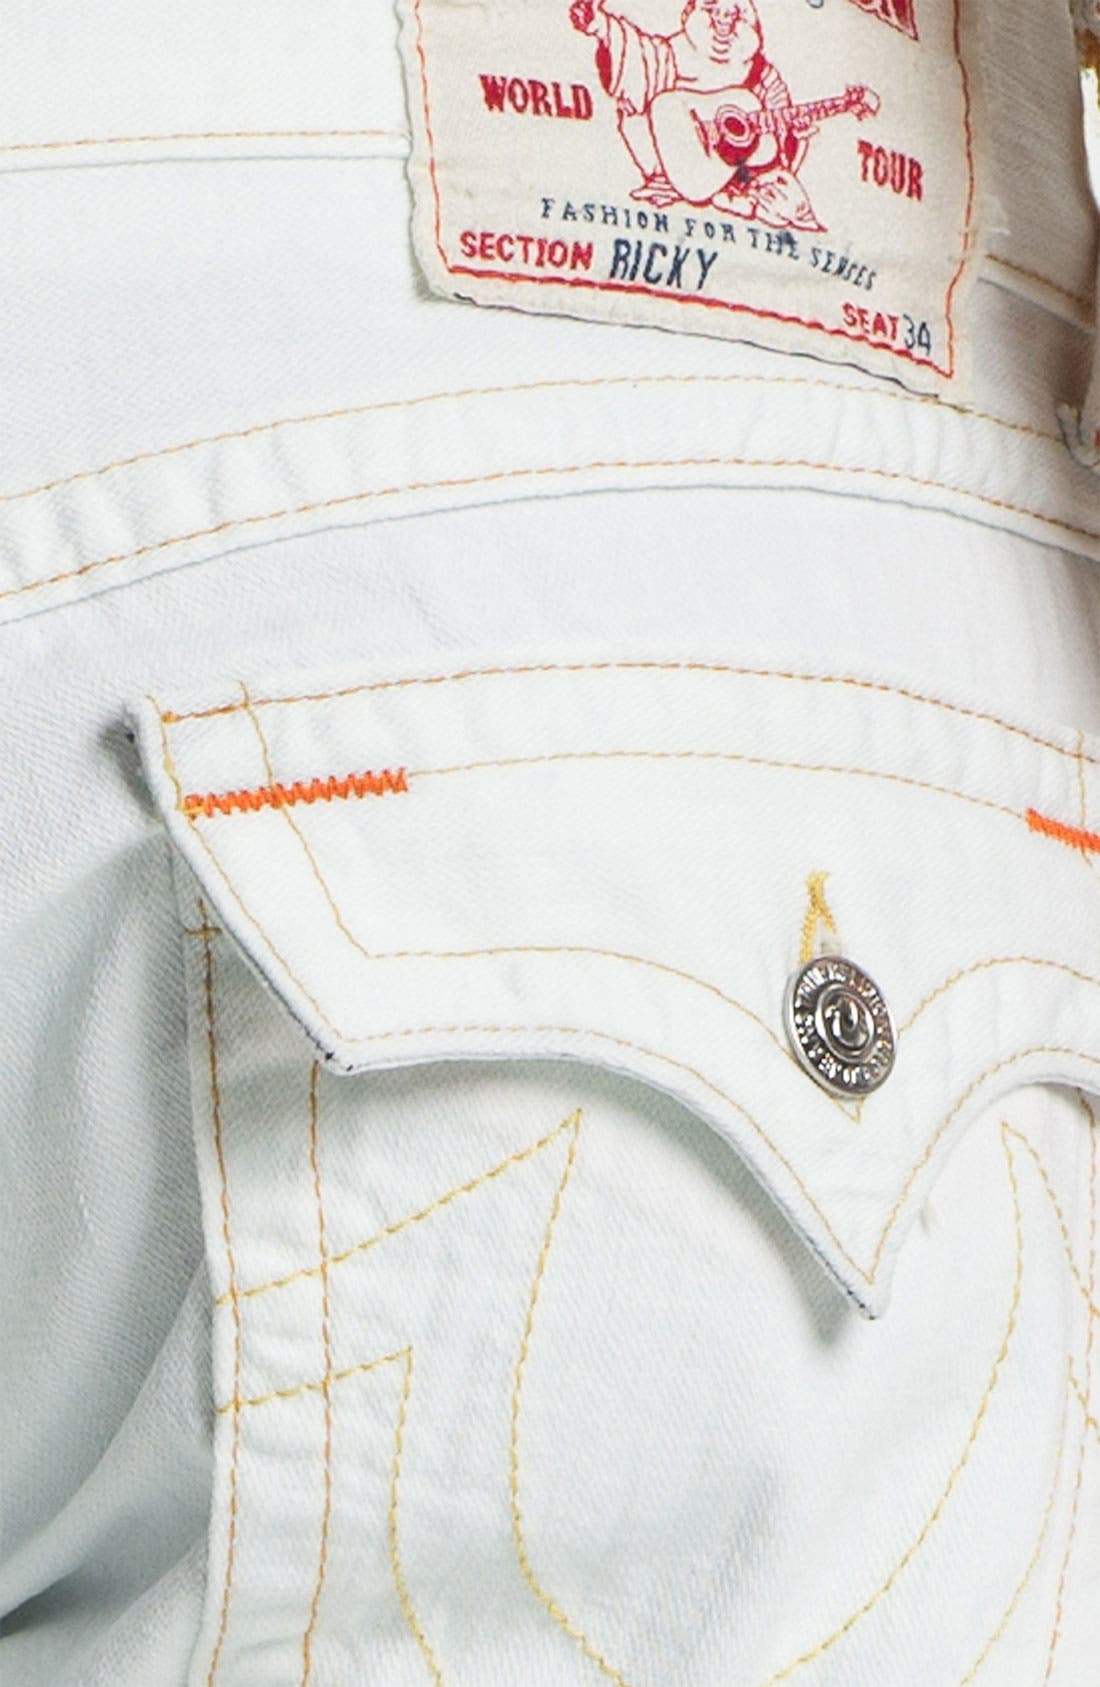 Alternate Image 4  - True Religion Brand Jeans 'Ricky' Straight Leg Jeans (Bleached) (Online Exclusive)